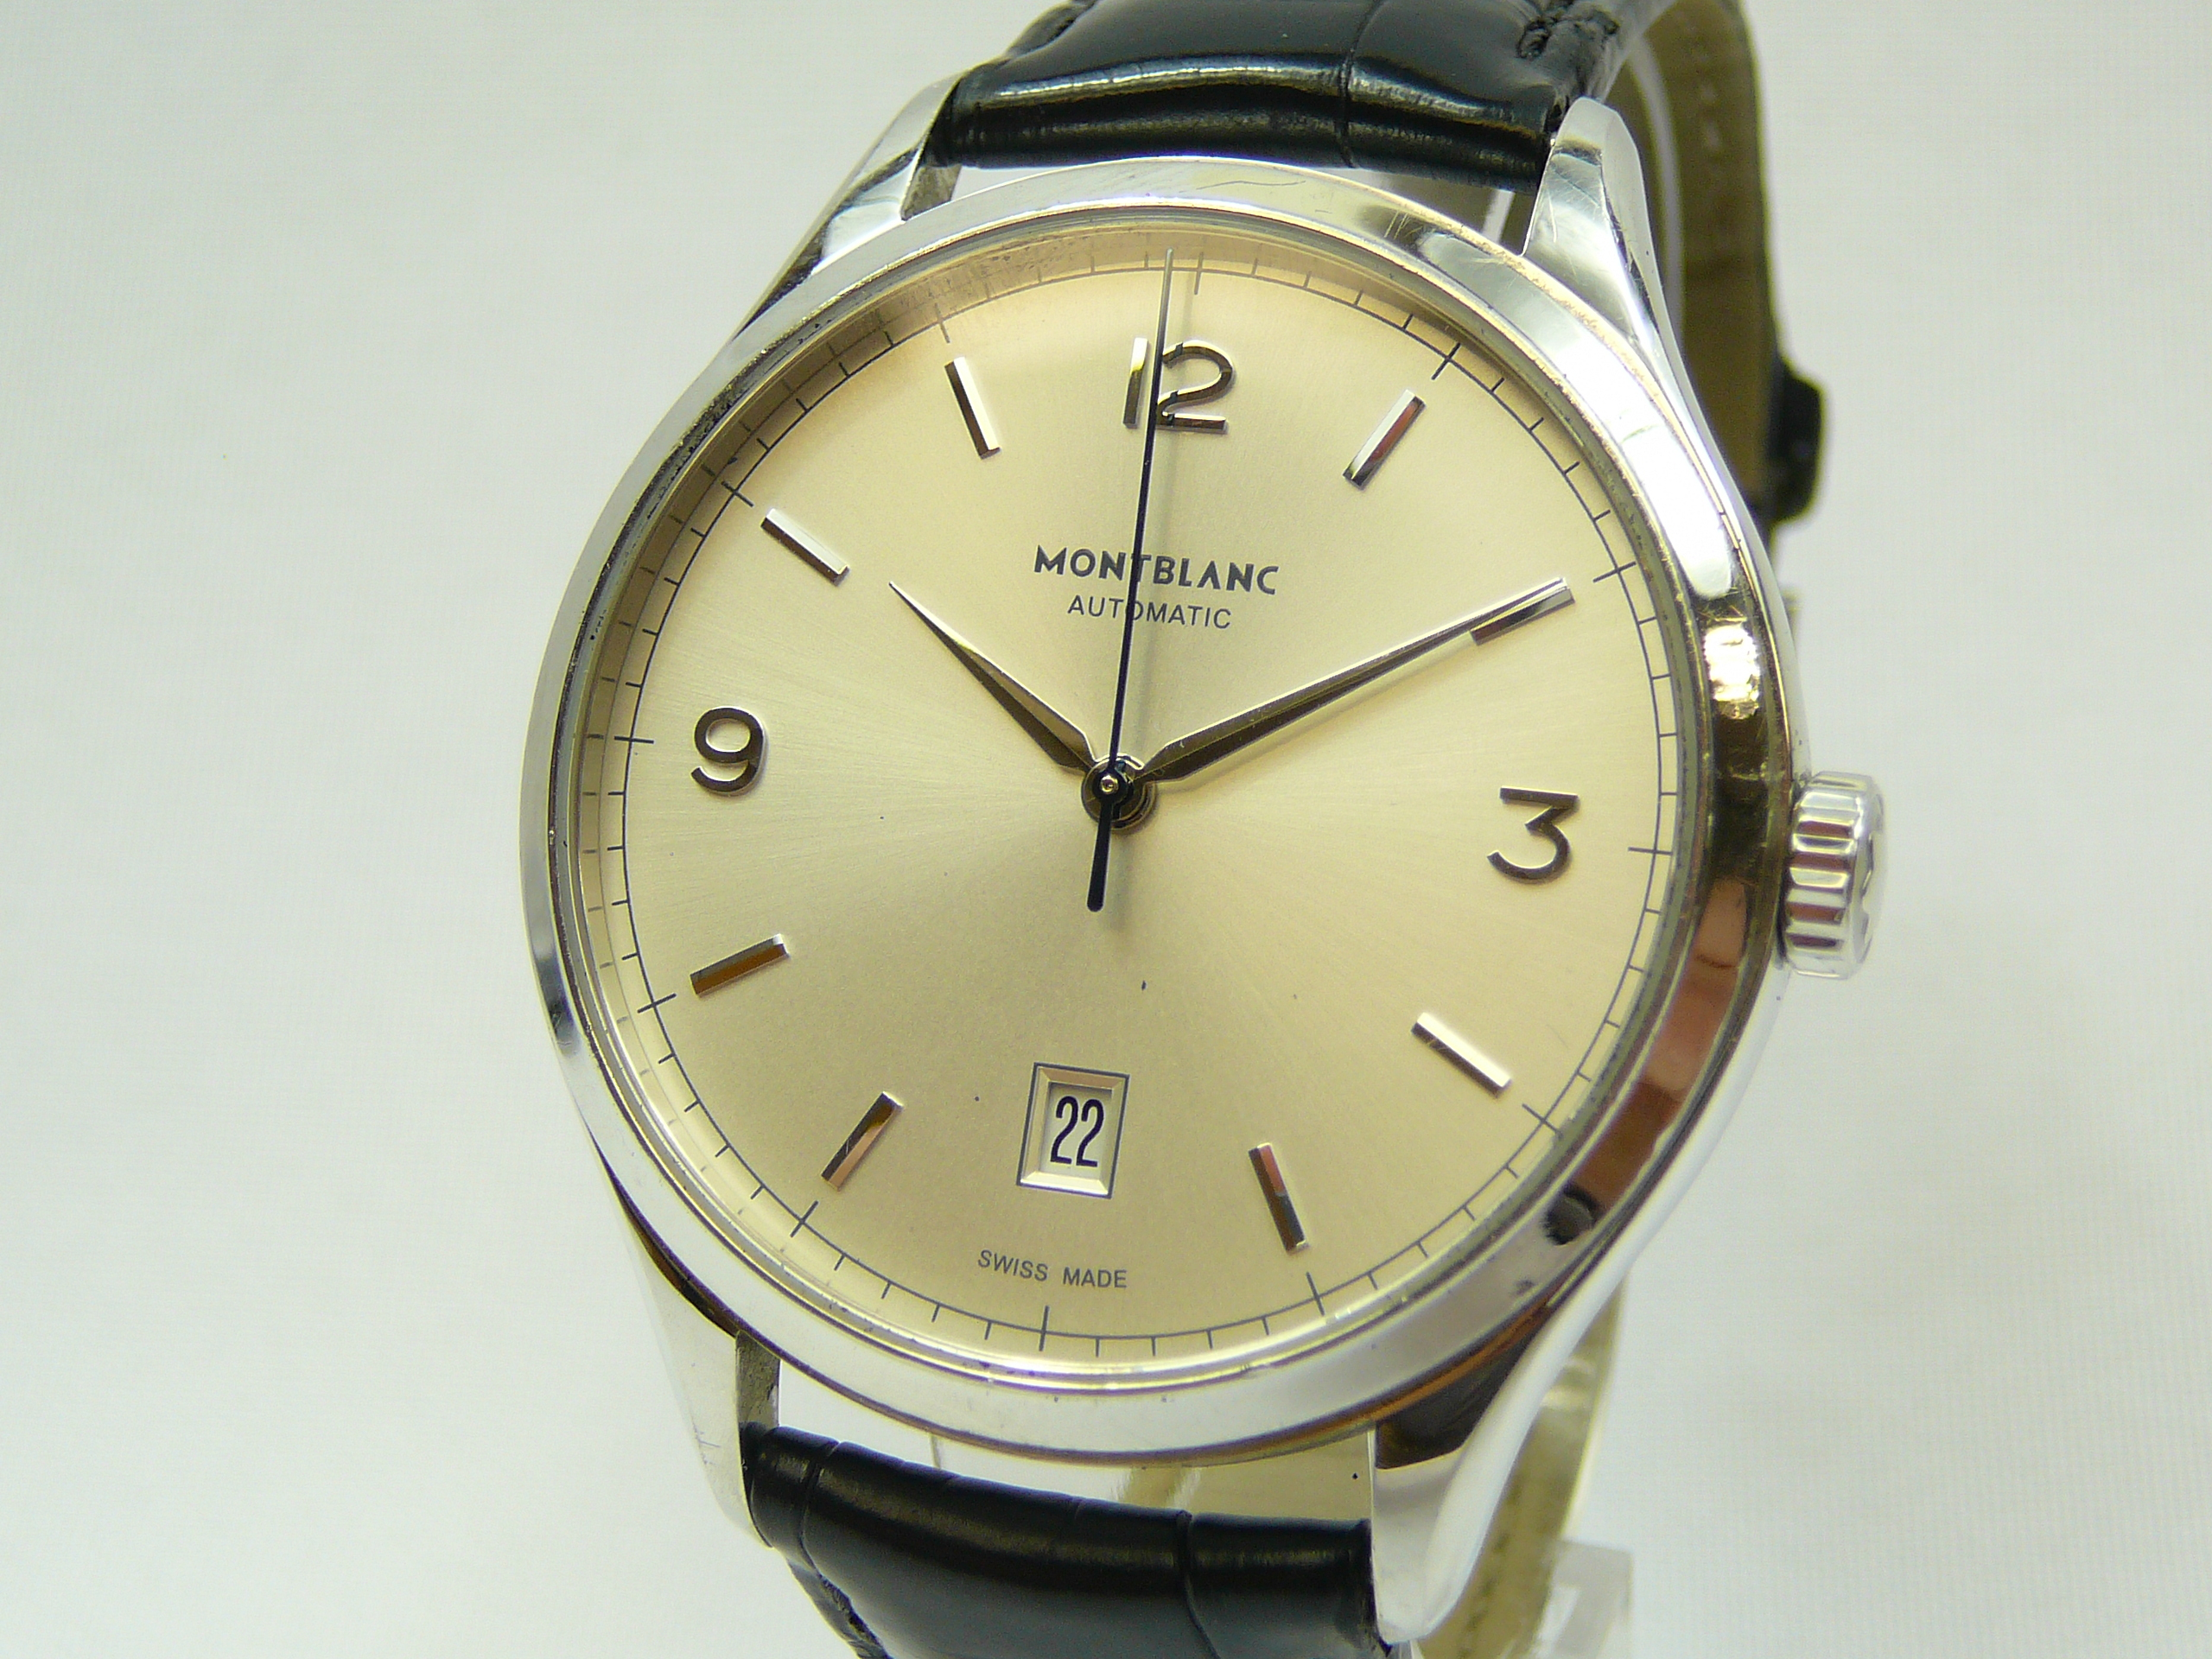 Gents Montblanc Wrist Watch - Image 2 of 3